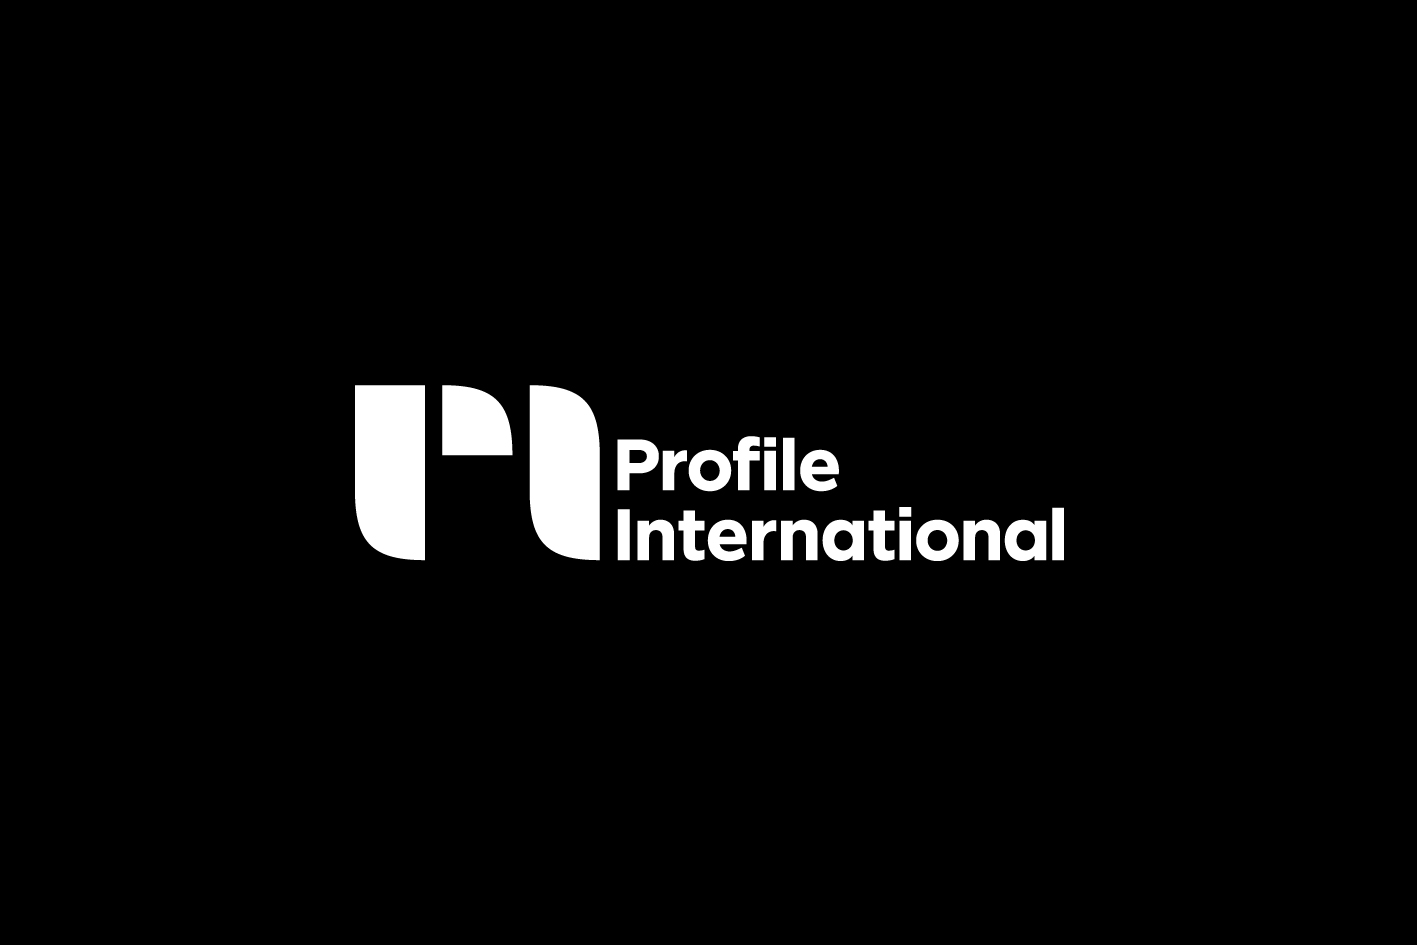 hh_profile_international_02